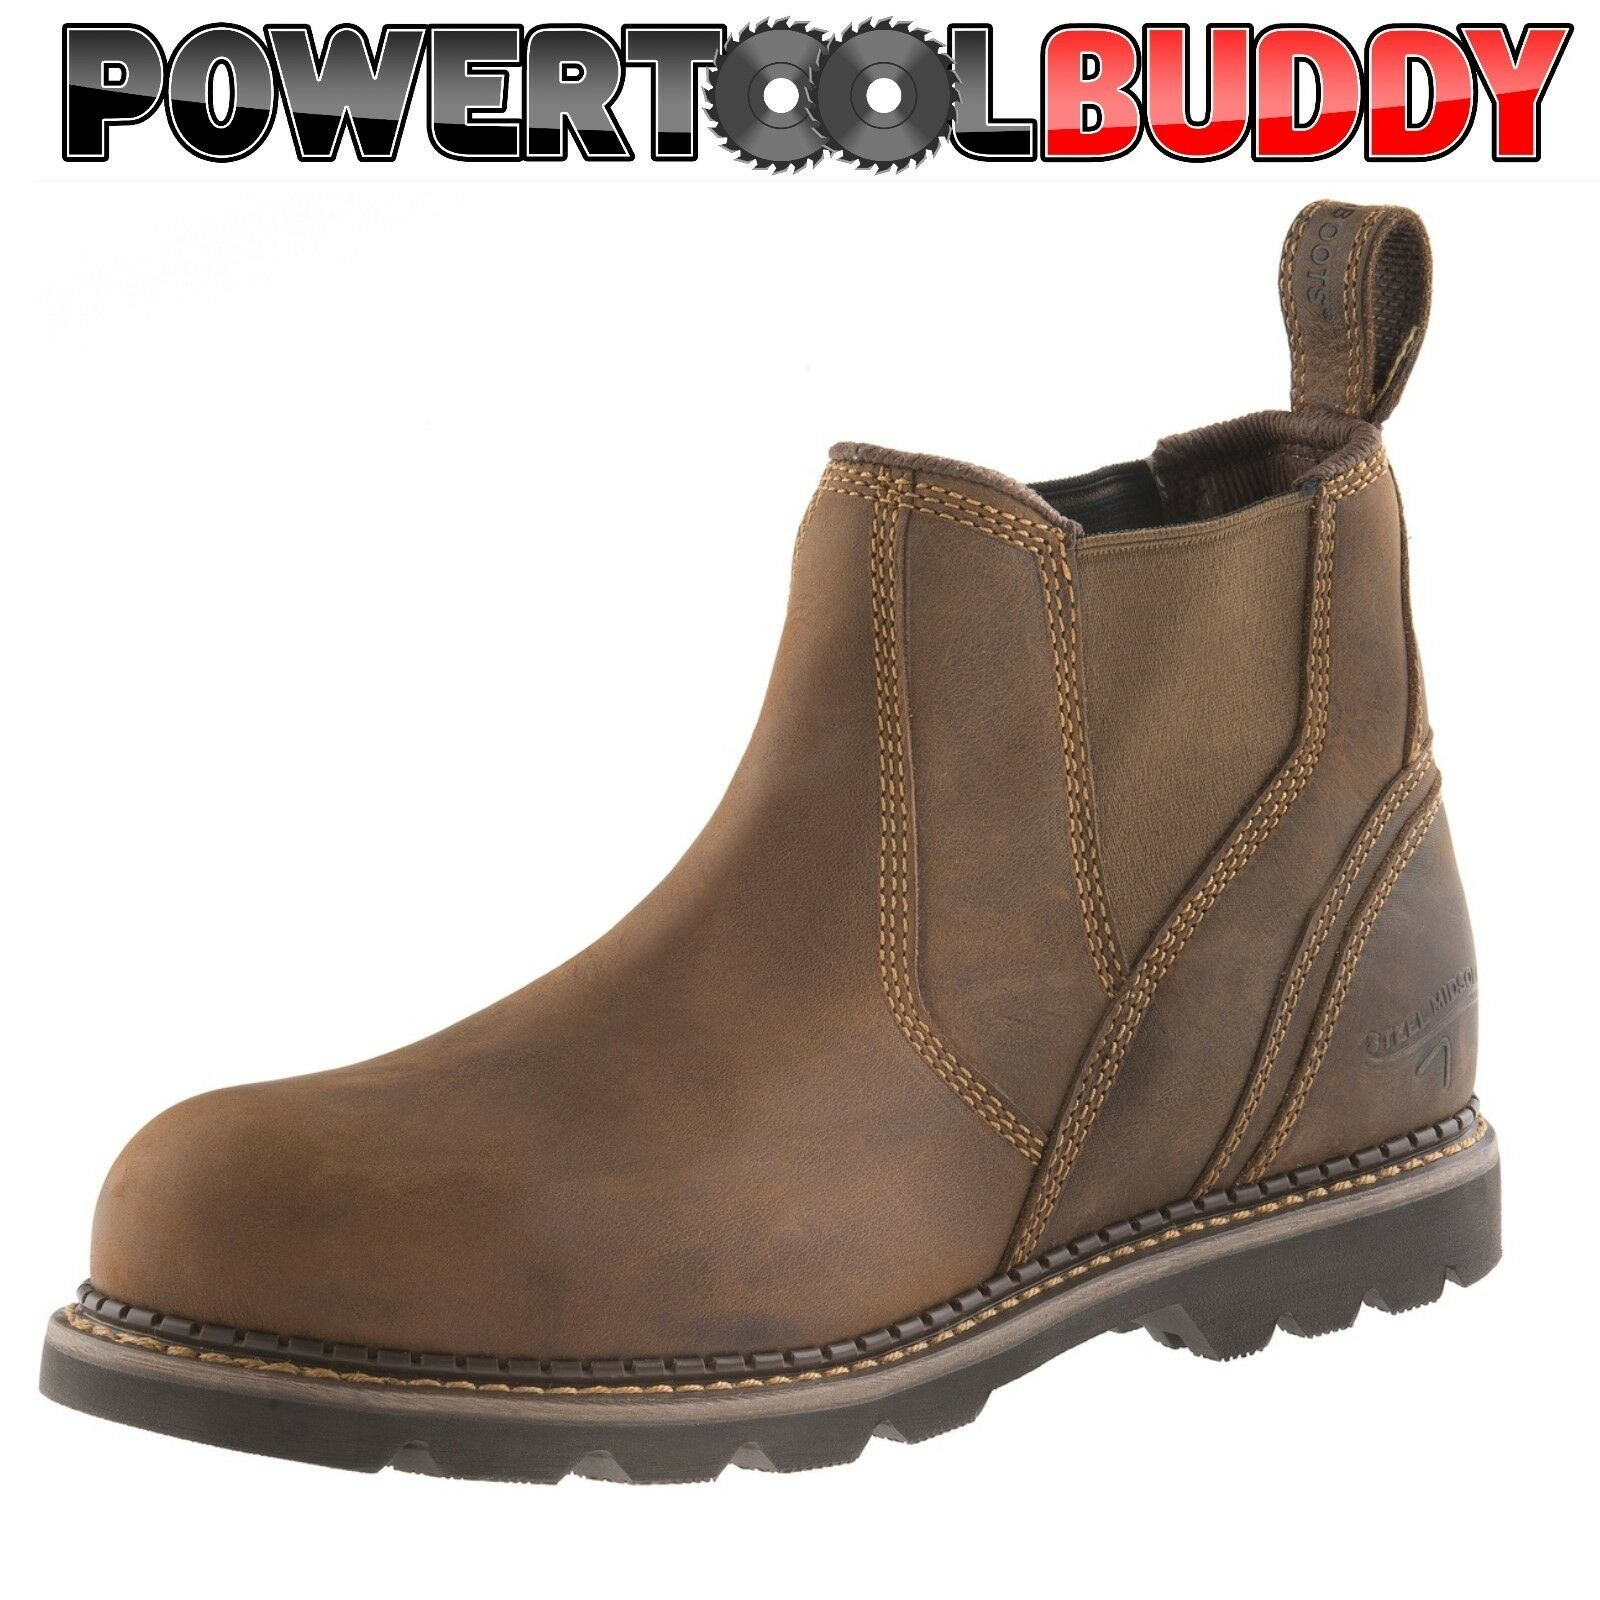 Buckler B1555SM Waxed safety Brown Crazy Horse leather safety Waxed dealer boot  Size 6 - 13 884de9